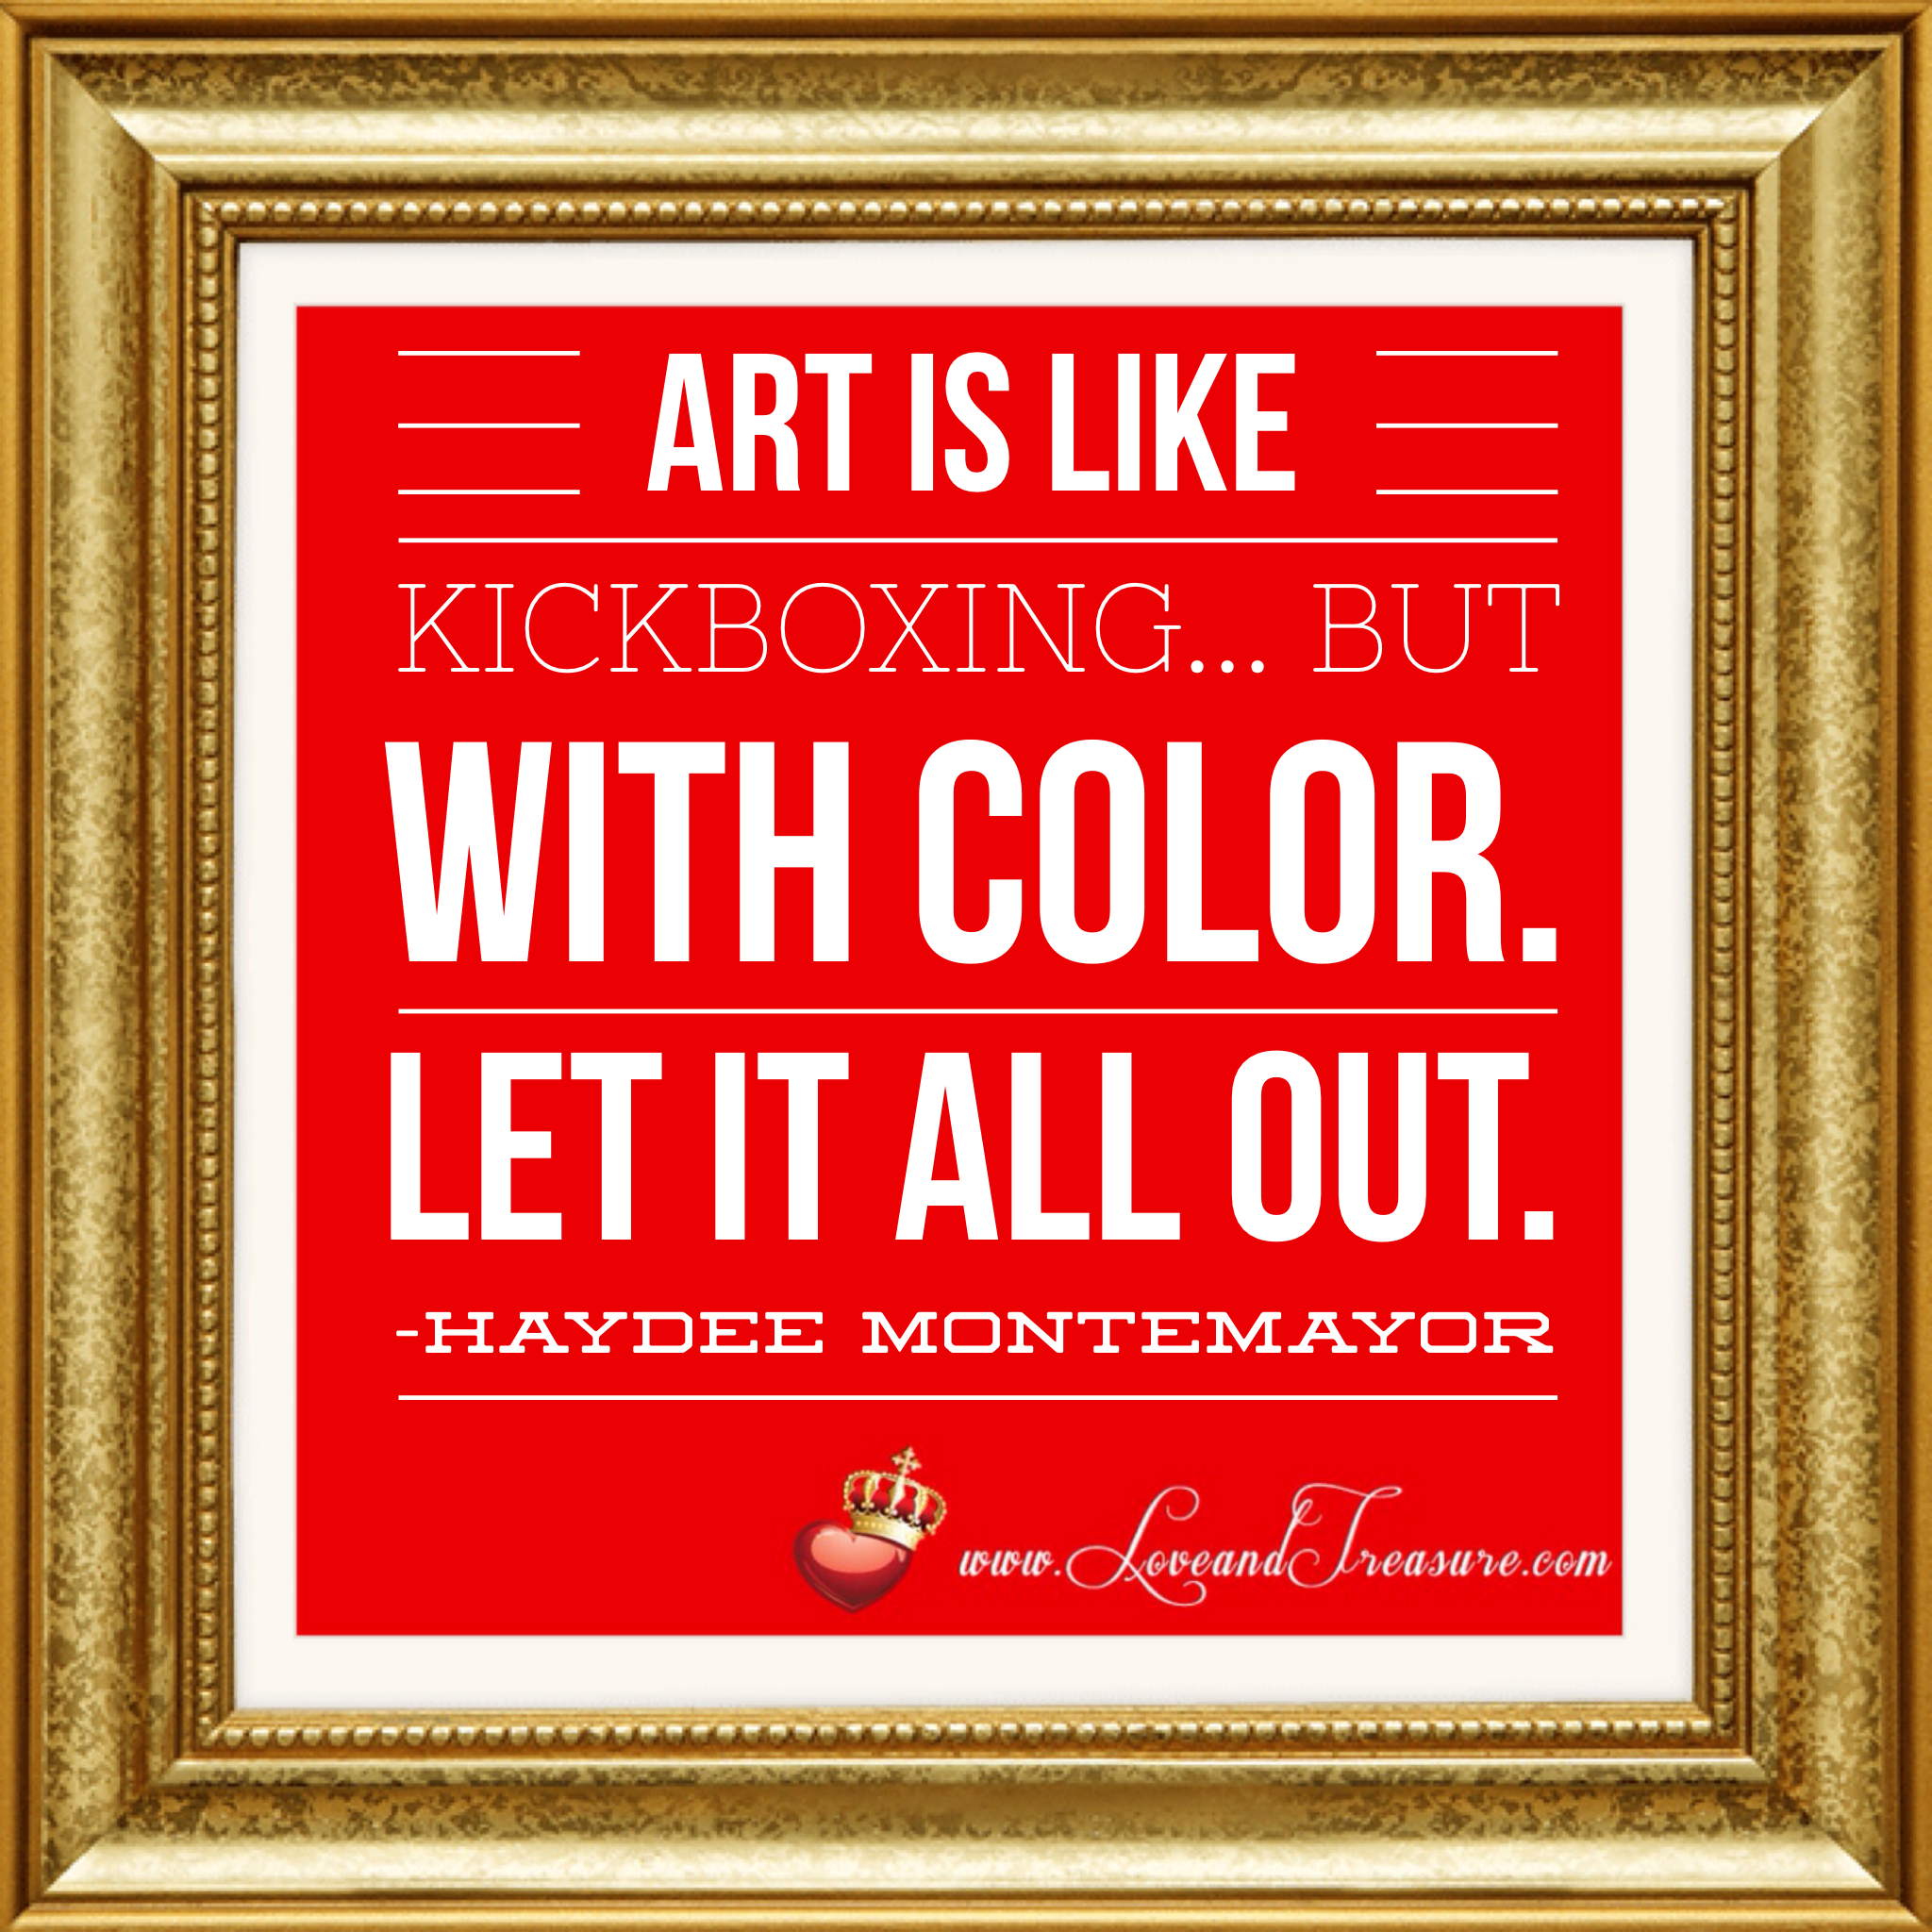 Art is like kickboxing but with color. Let it all out. by Haydee Montemayor from Love and Treasure blog www.loveandtreasure.com